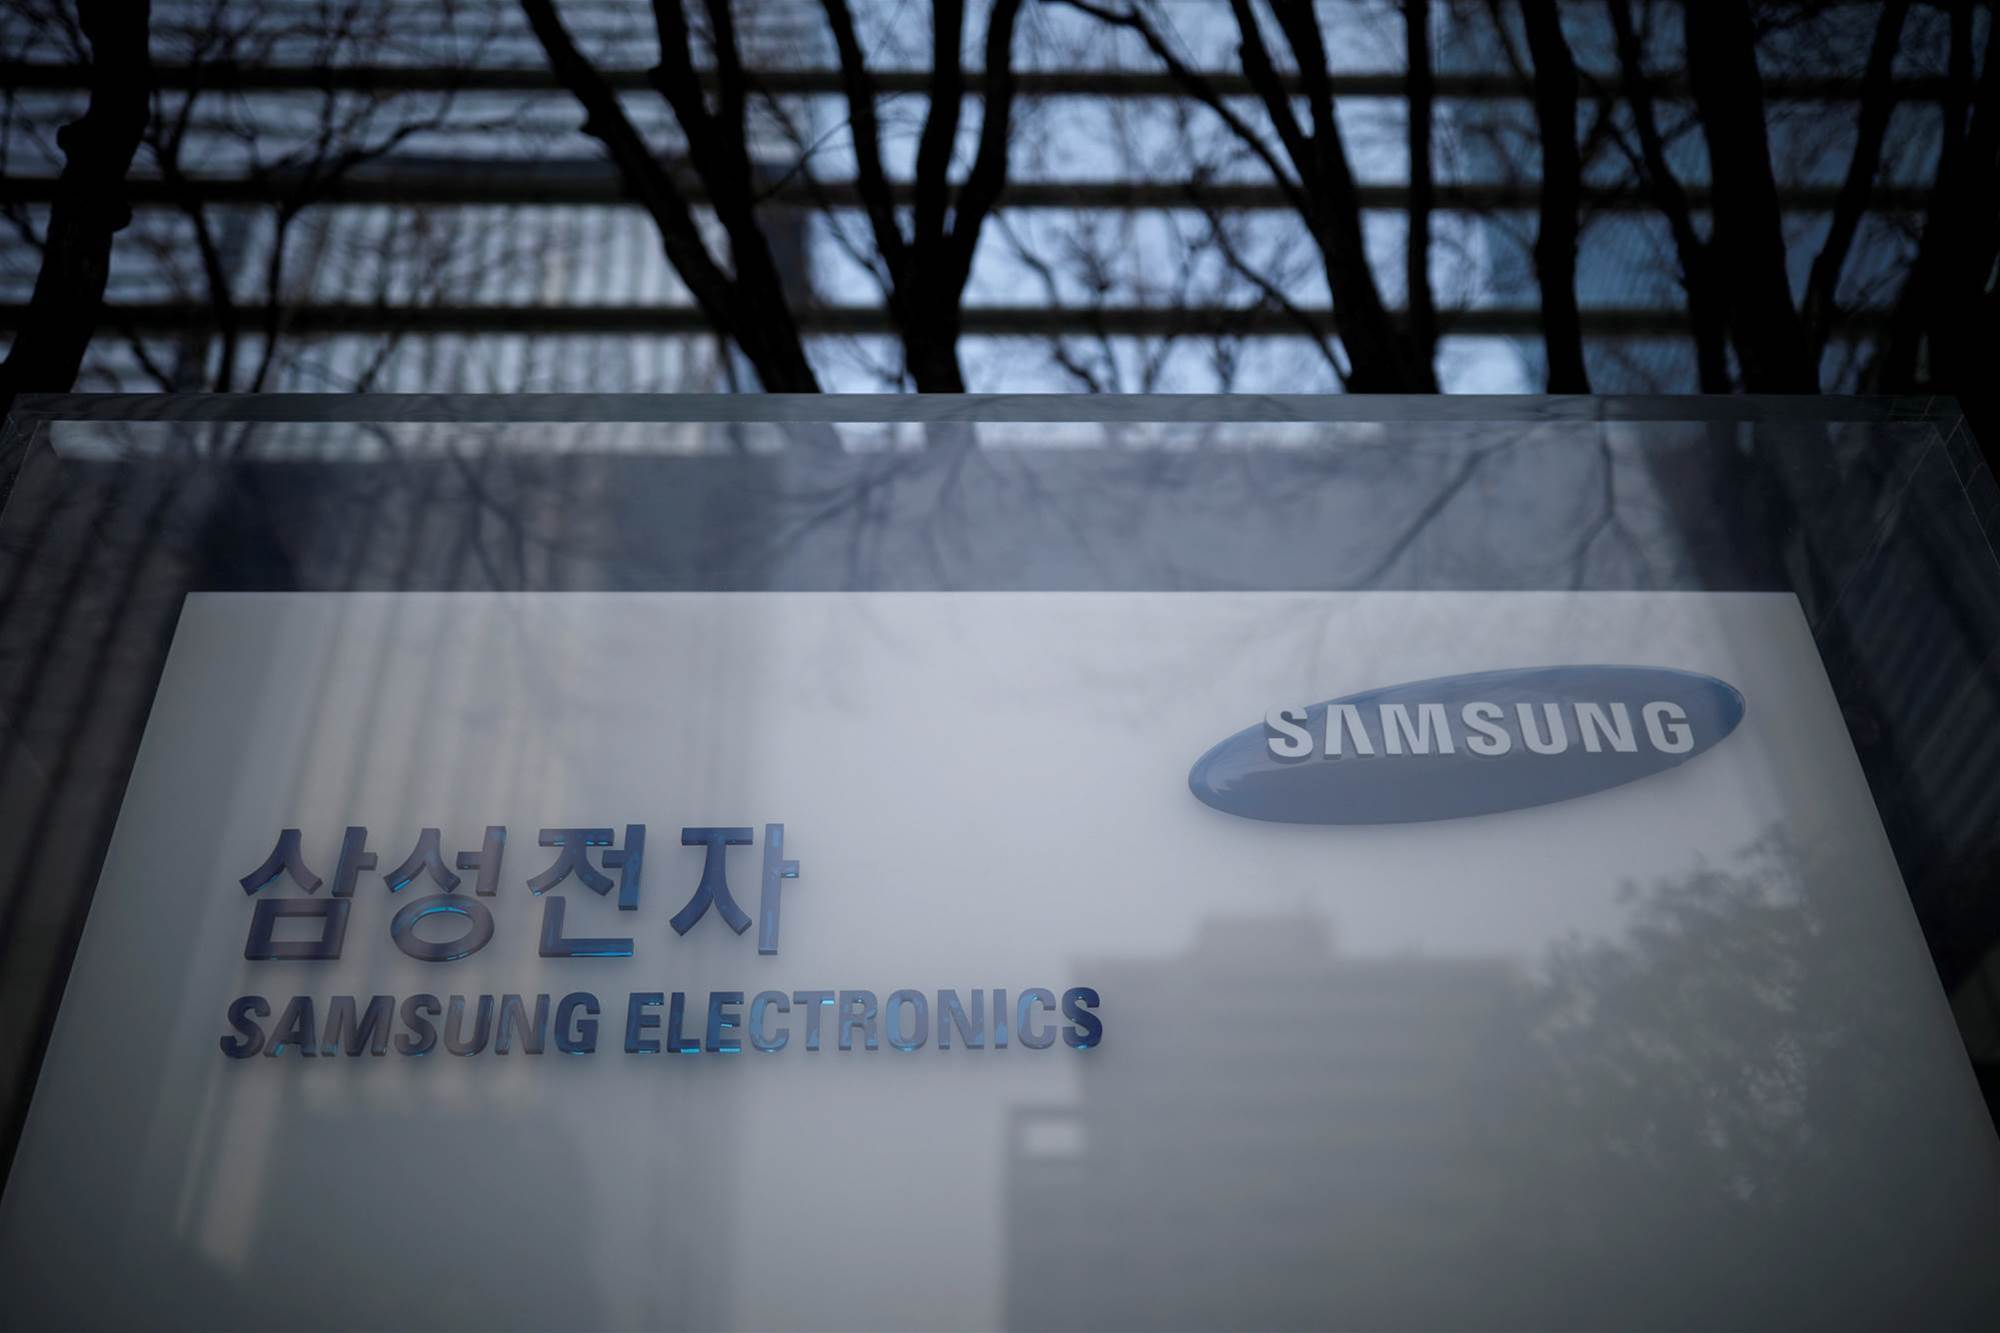 Samsung hits record quarter despite chip boom slowdown